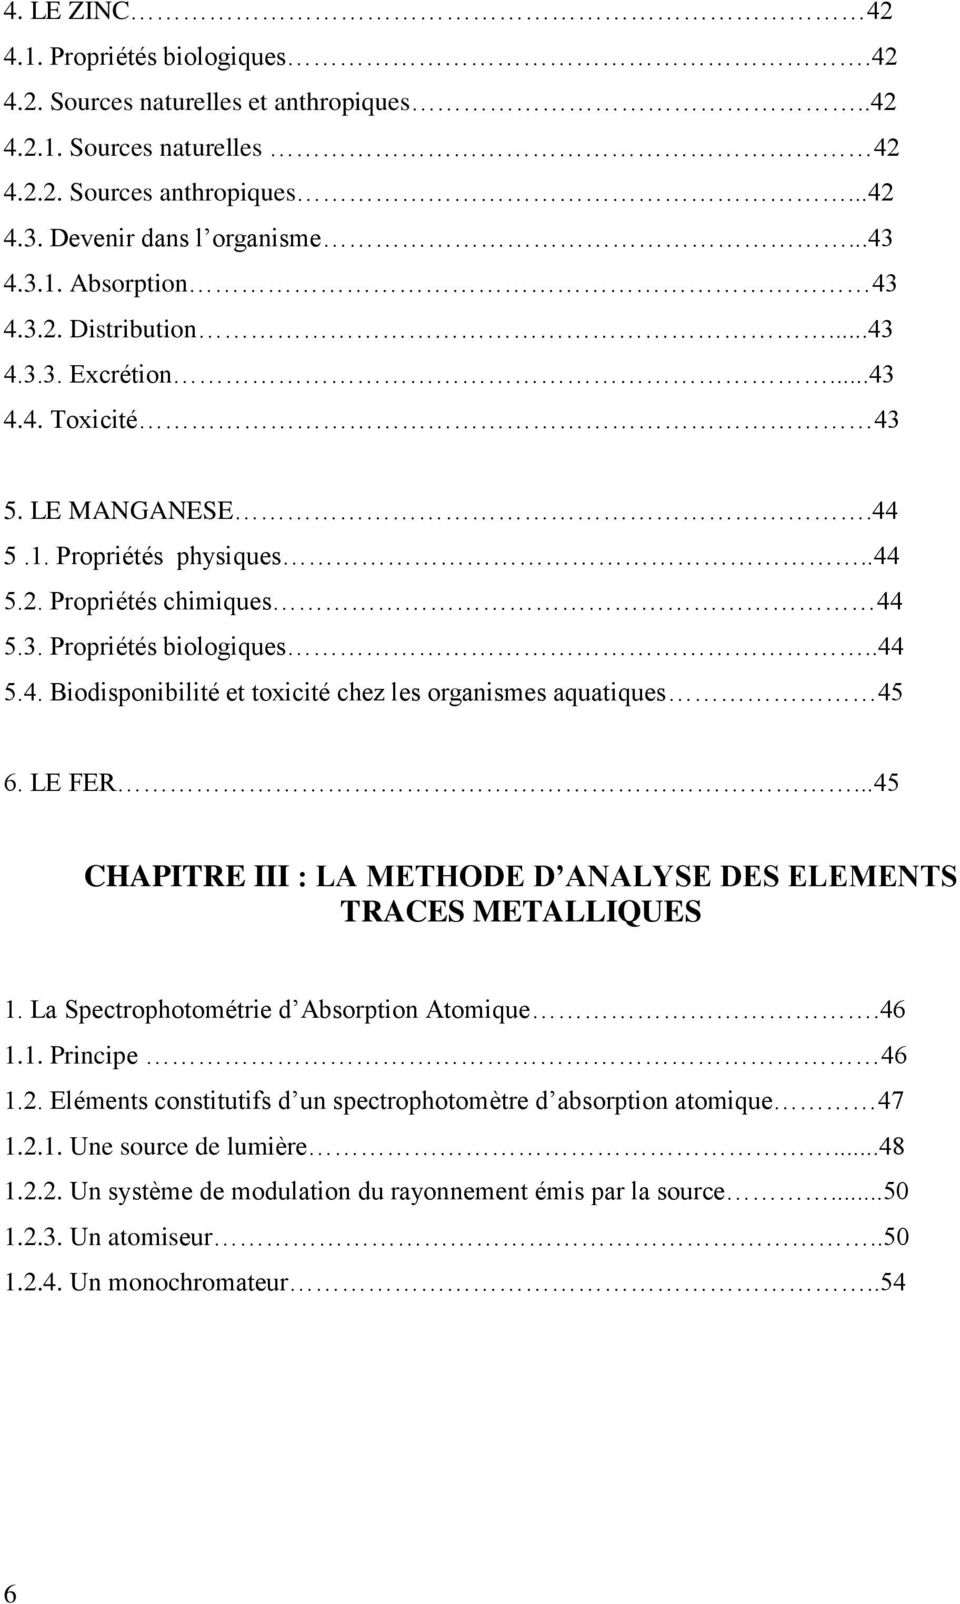 LE FER...45 CHAPITRE III : LA METHODE D ANALYSE DES ELEMENTS TRACES METALLIQUES 1. La Spectrophotométrie d Absorption Atomique.46 1.1. Principe 46 1.2.